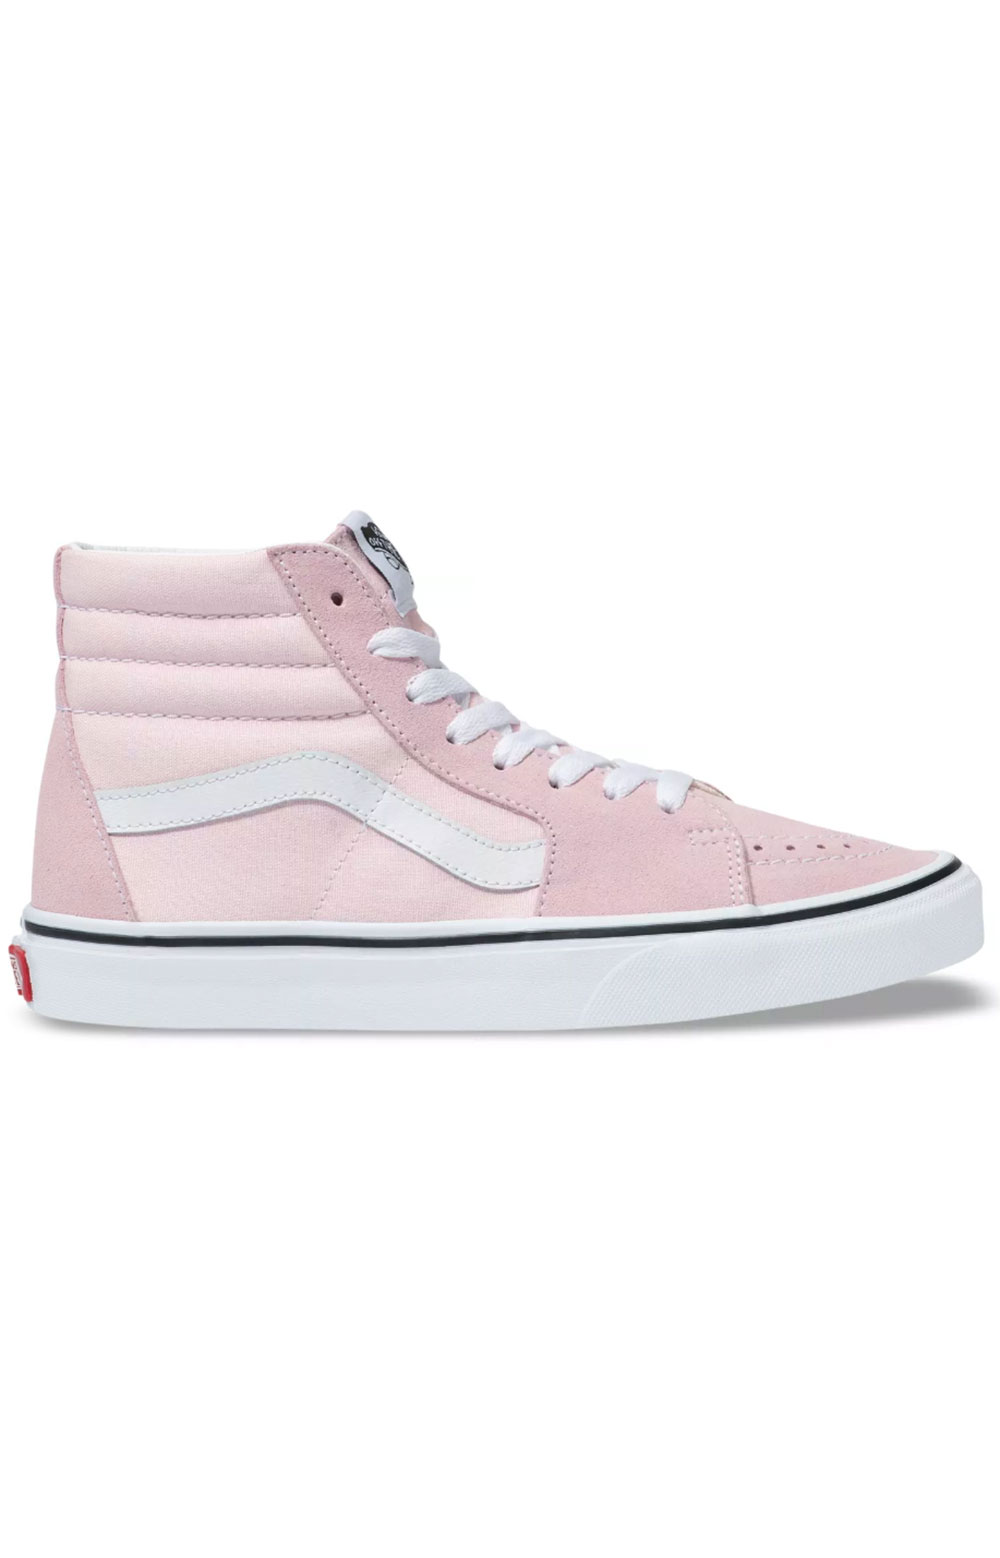 (BV6TC3) Sk8-Hi Shoe - Blushing/True White